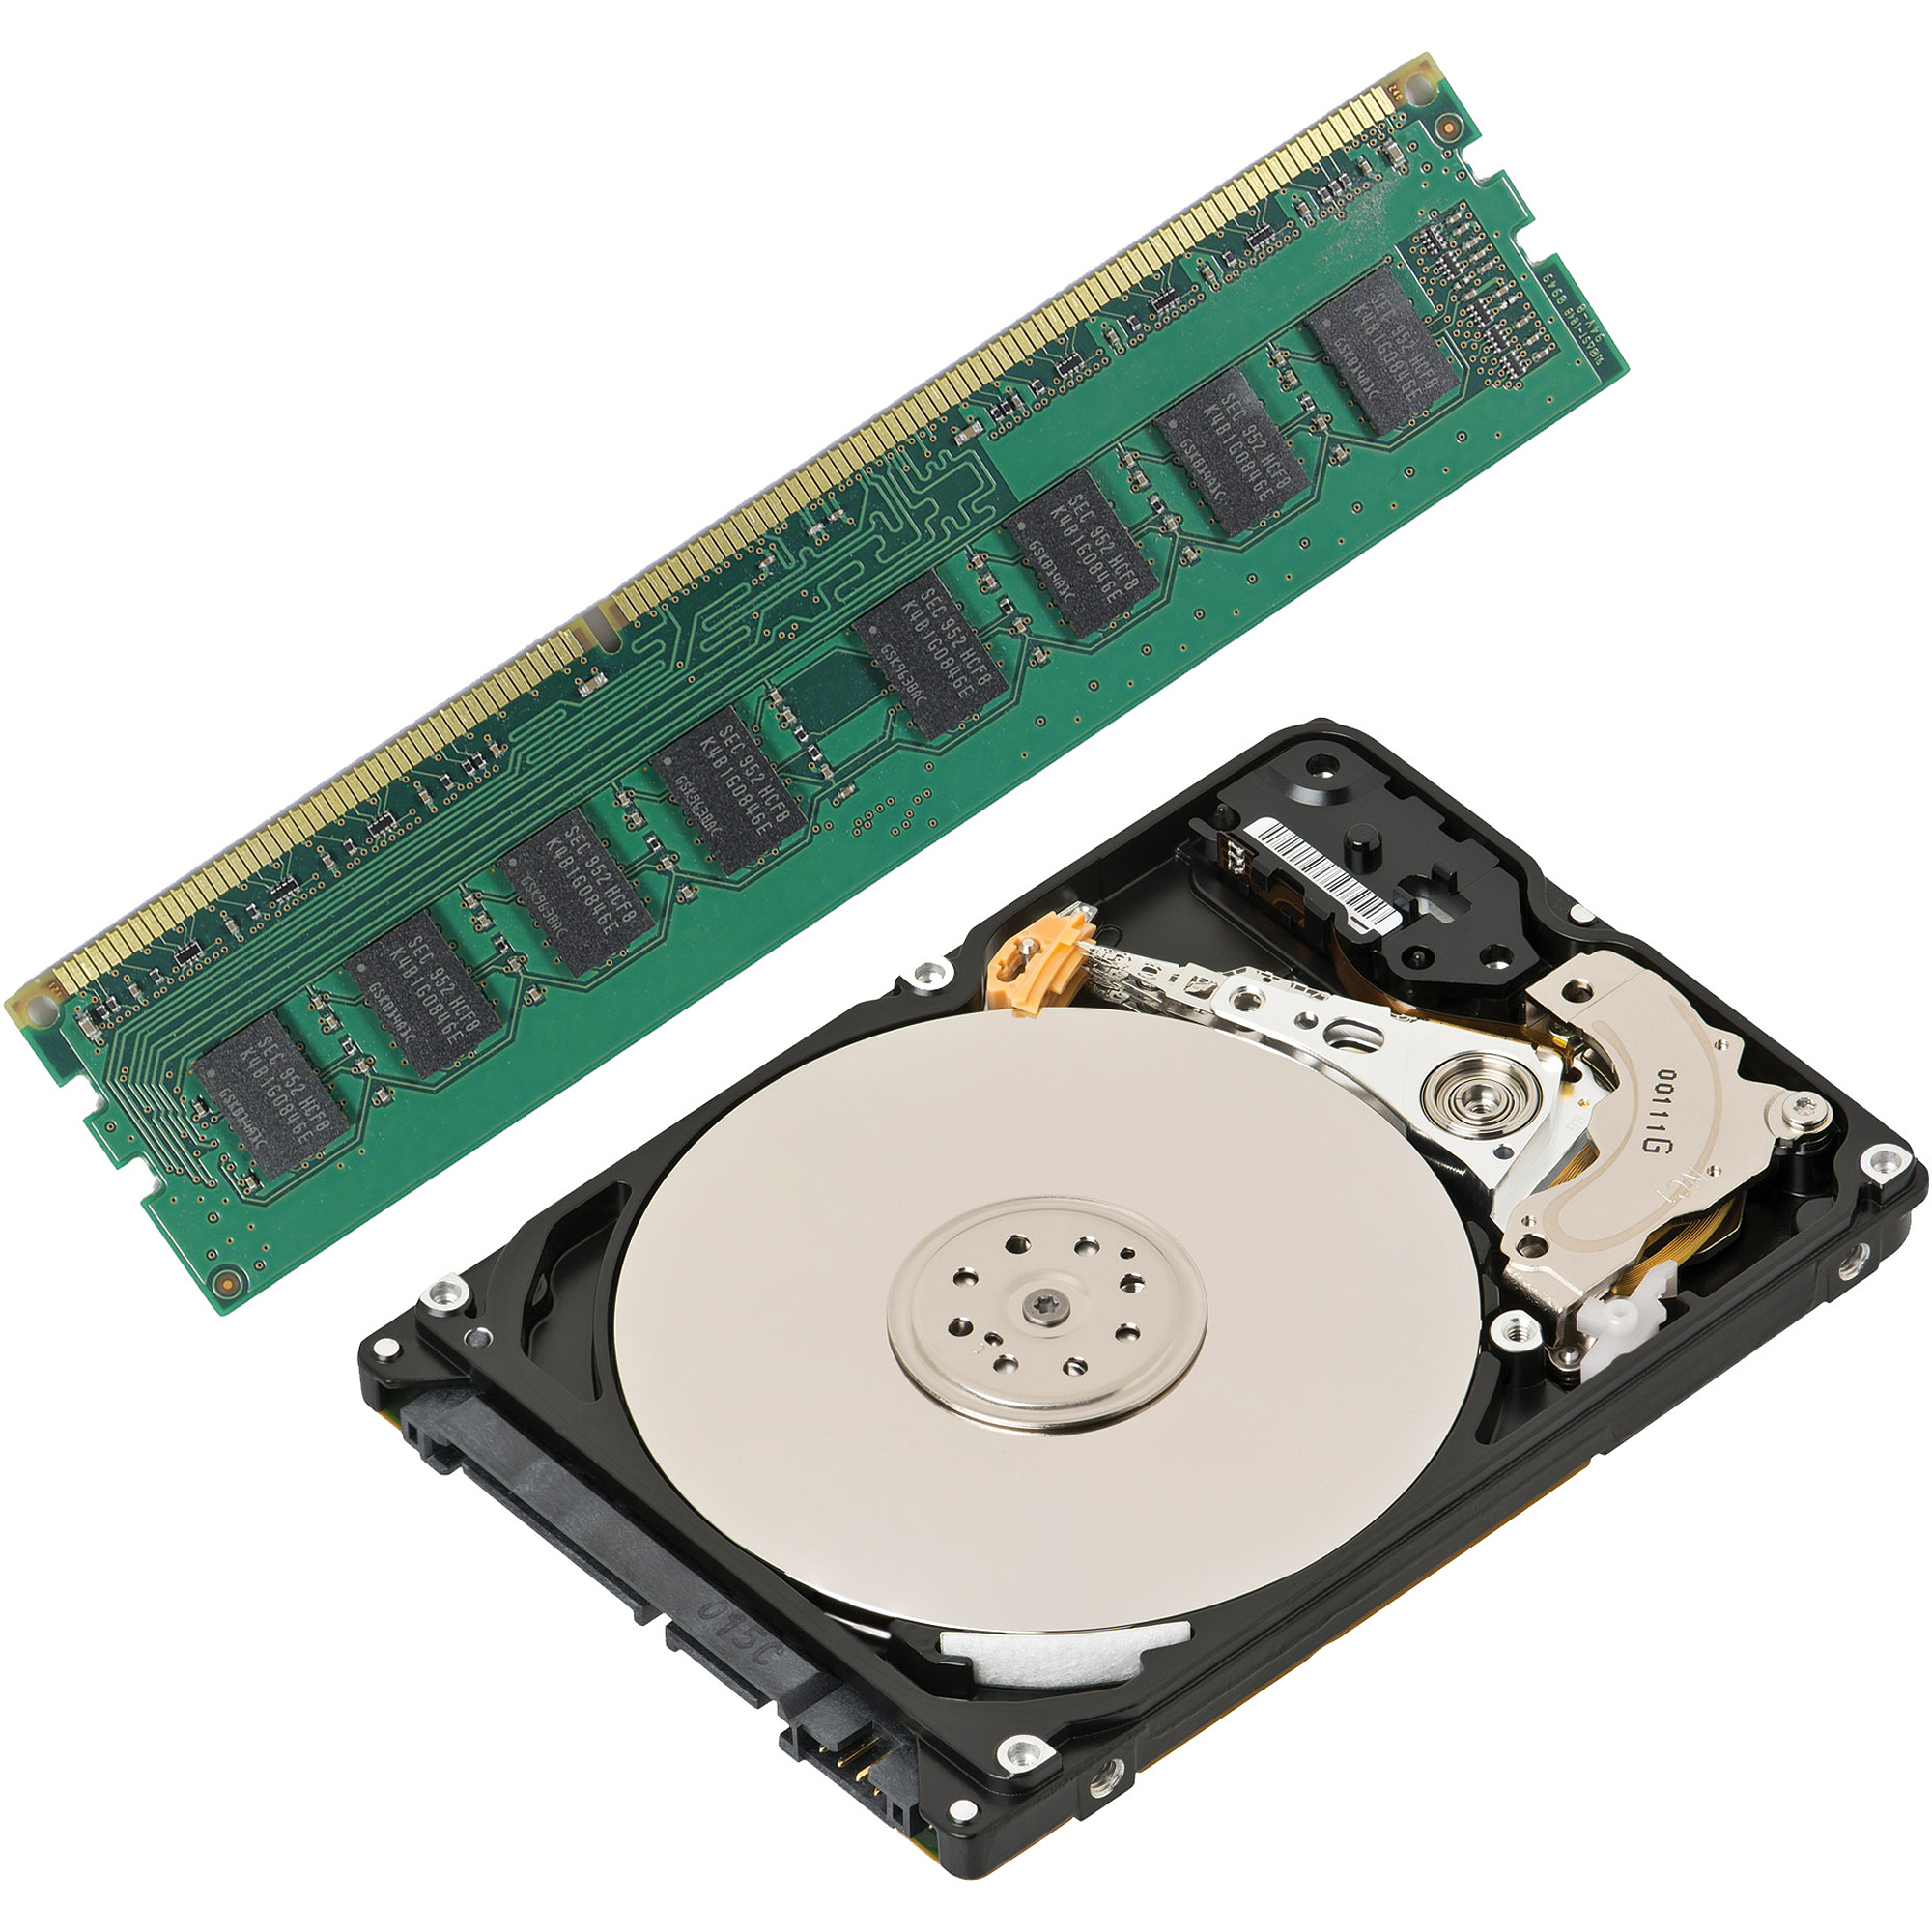 4GB DDR3 Memory + 500GB Hard Drive